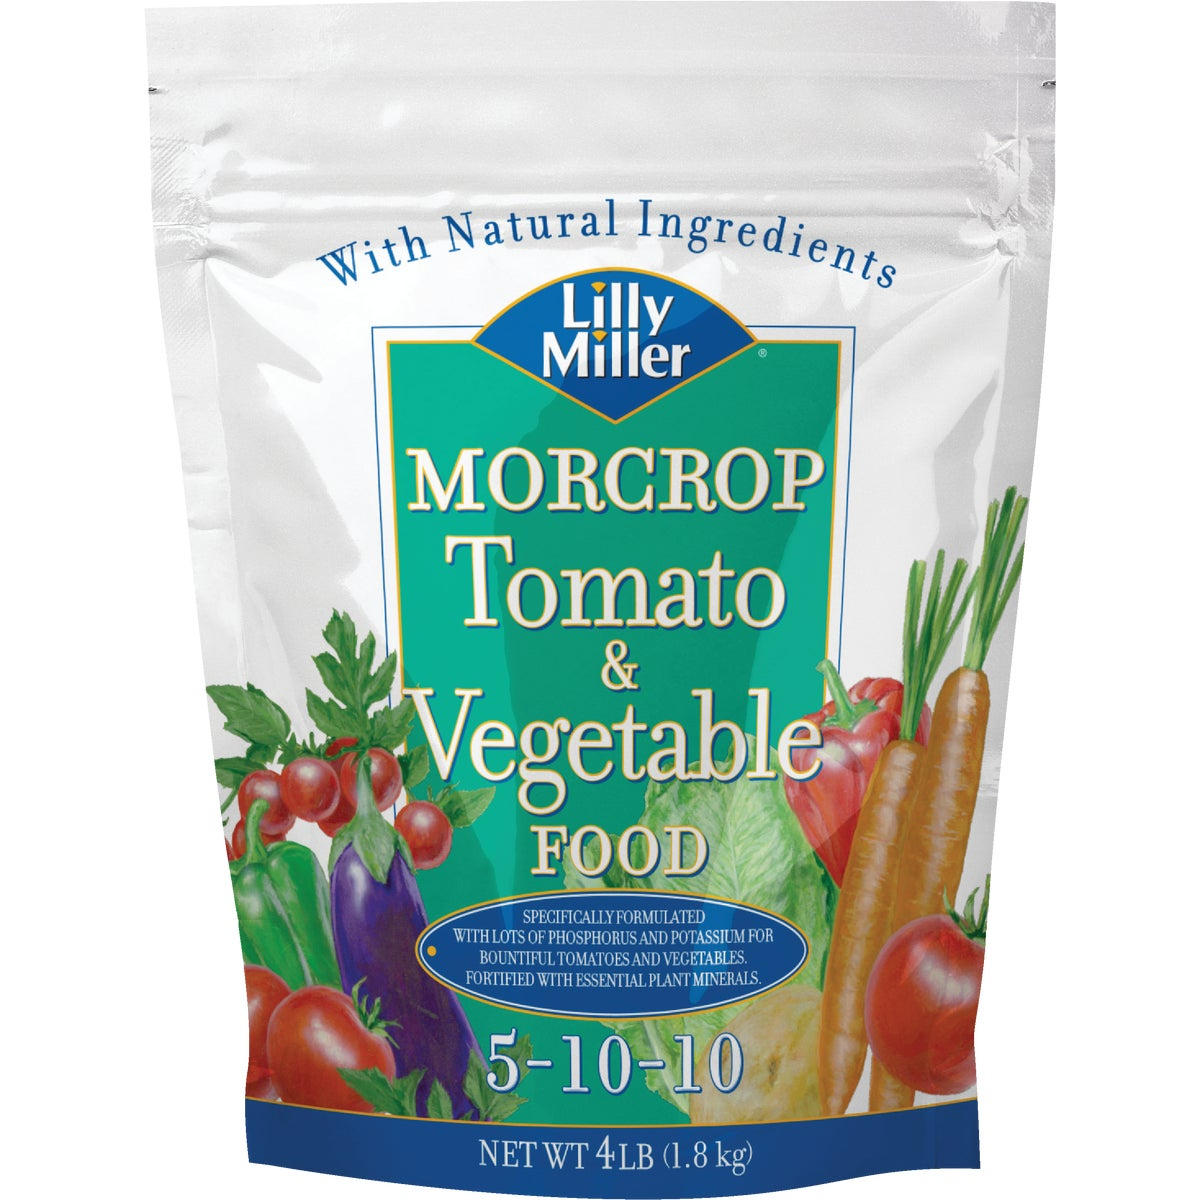 4lb Tomto&vegetable Food - 03601209 by Excel Marketing